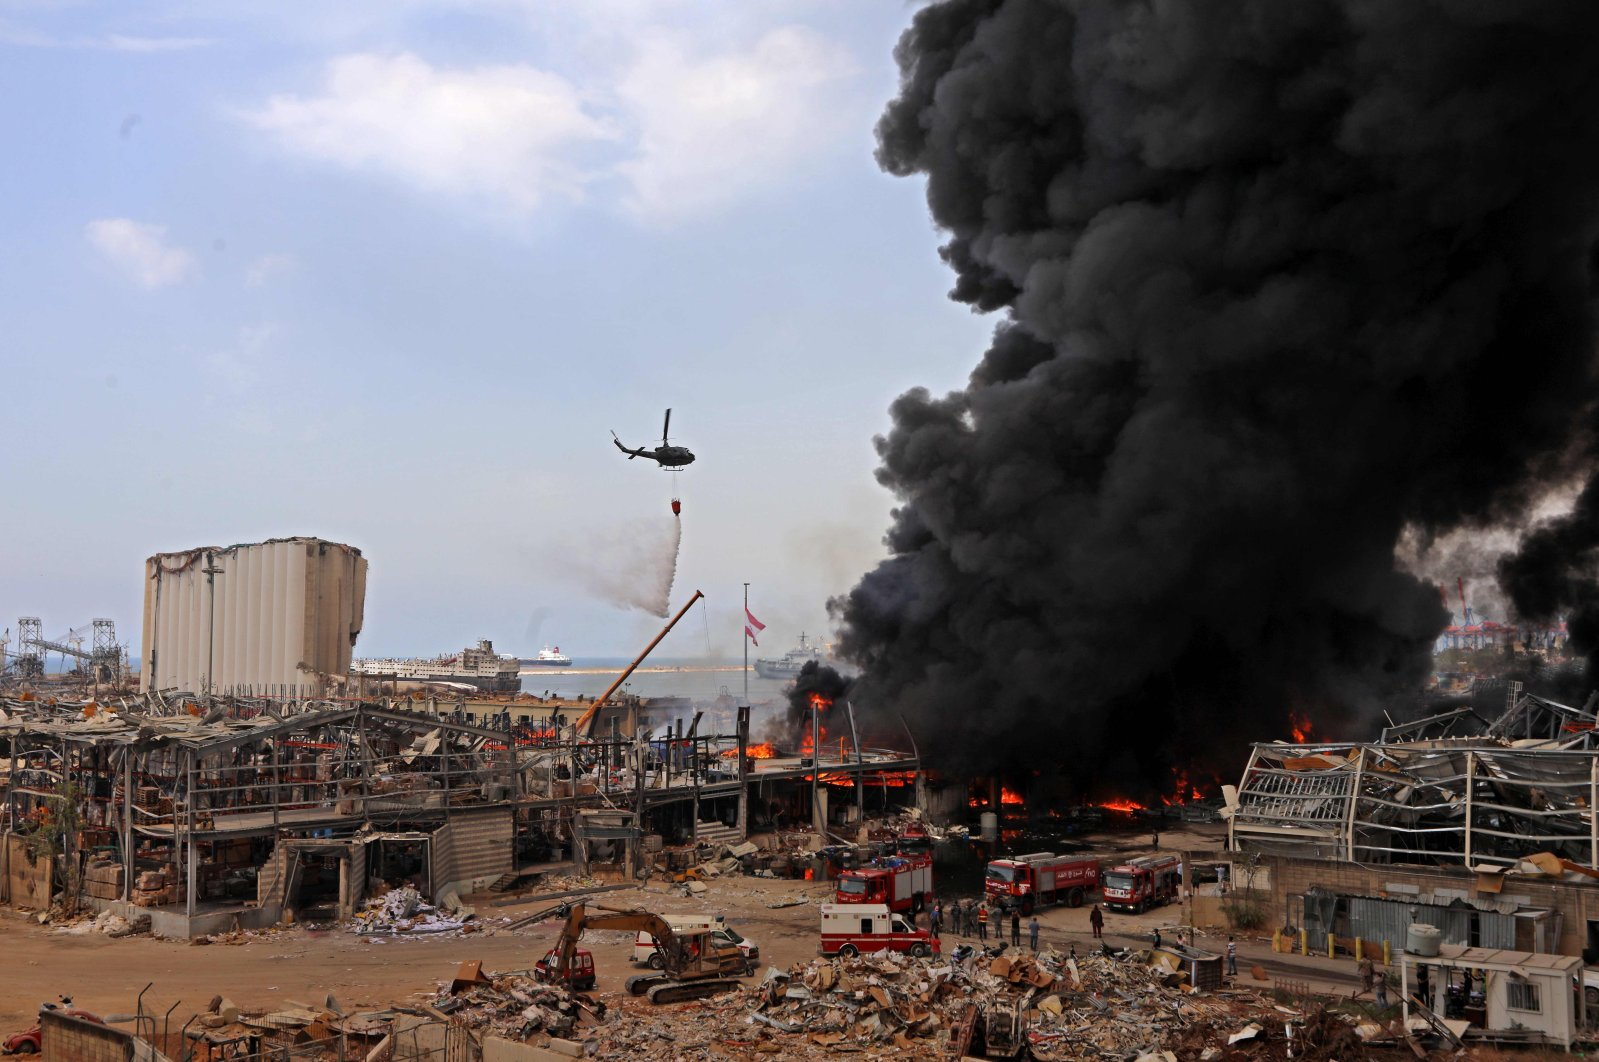 Lebanese firefighters try to put out a fire that broke out at Beirut's port area, on September 10, 2020. (AFP Photo)